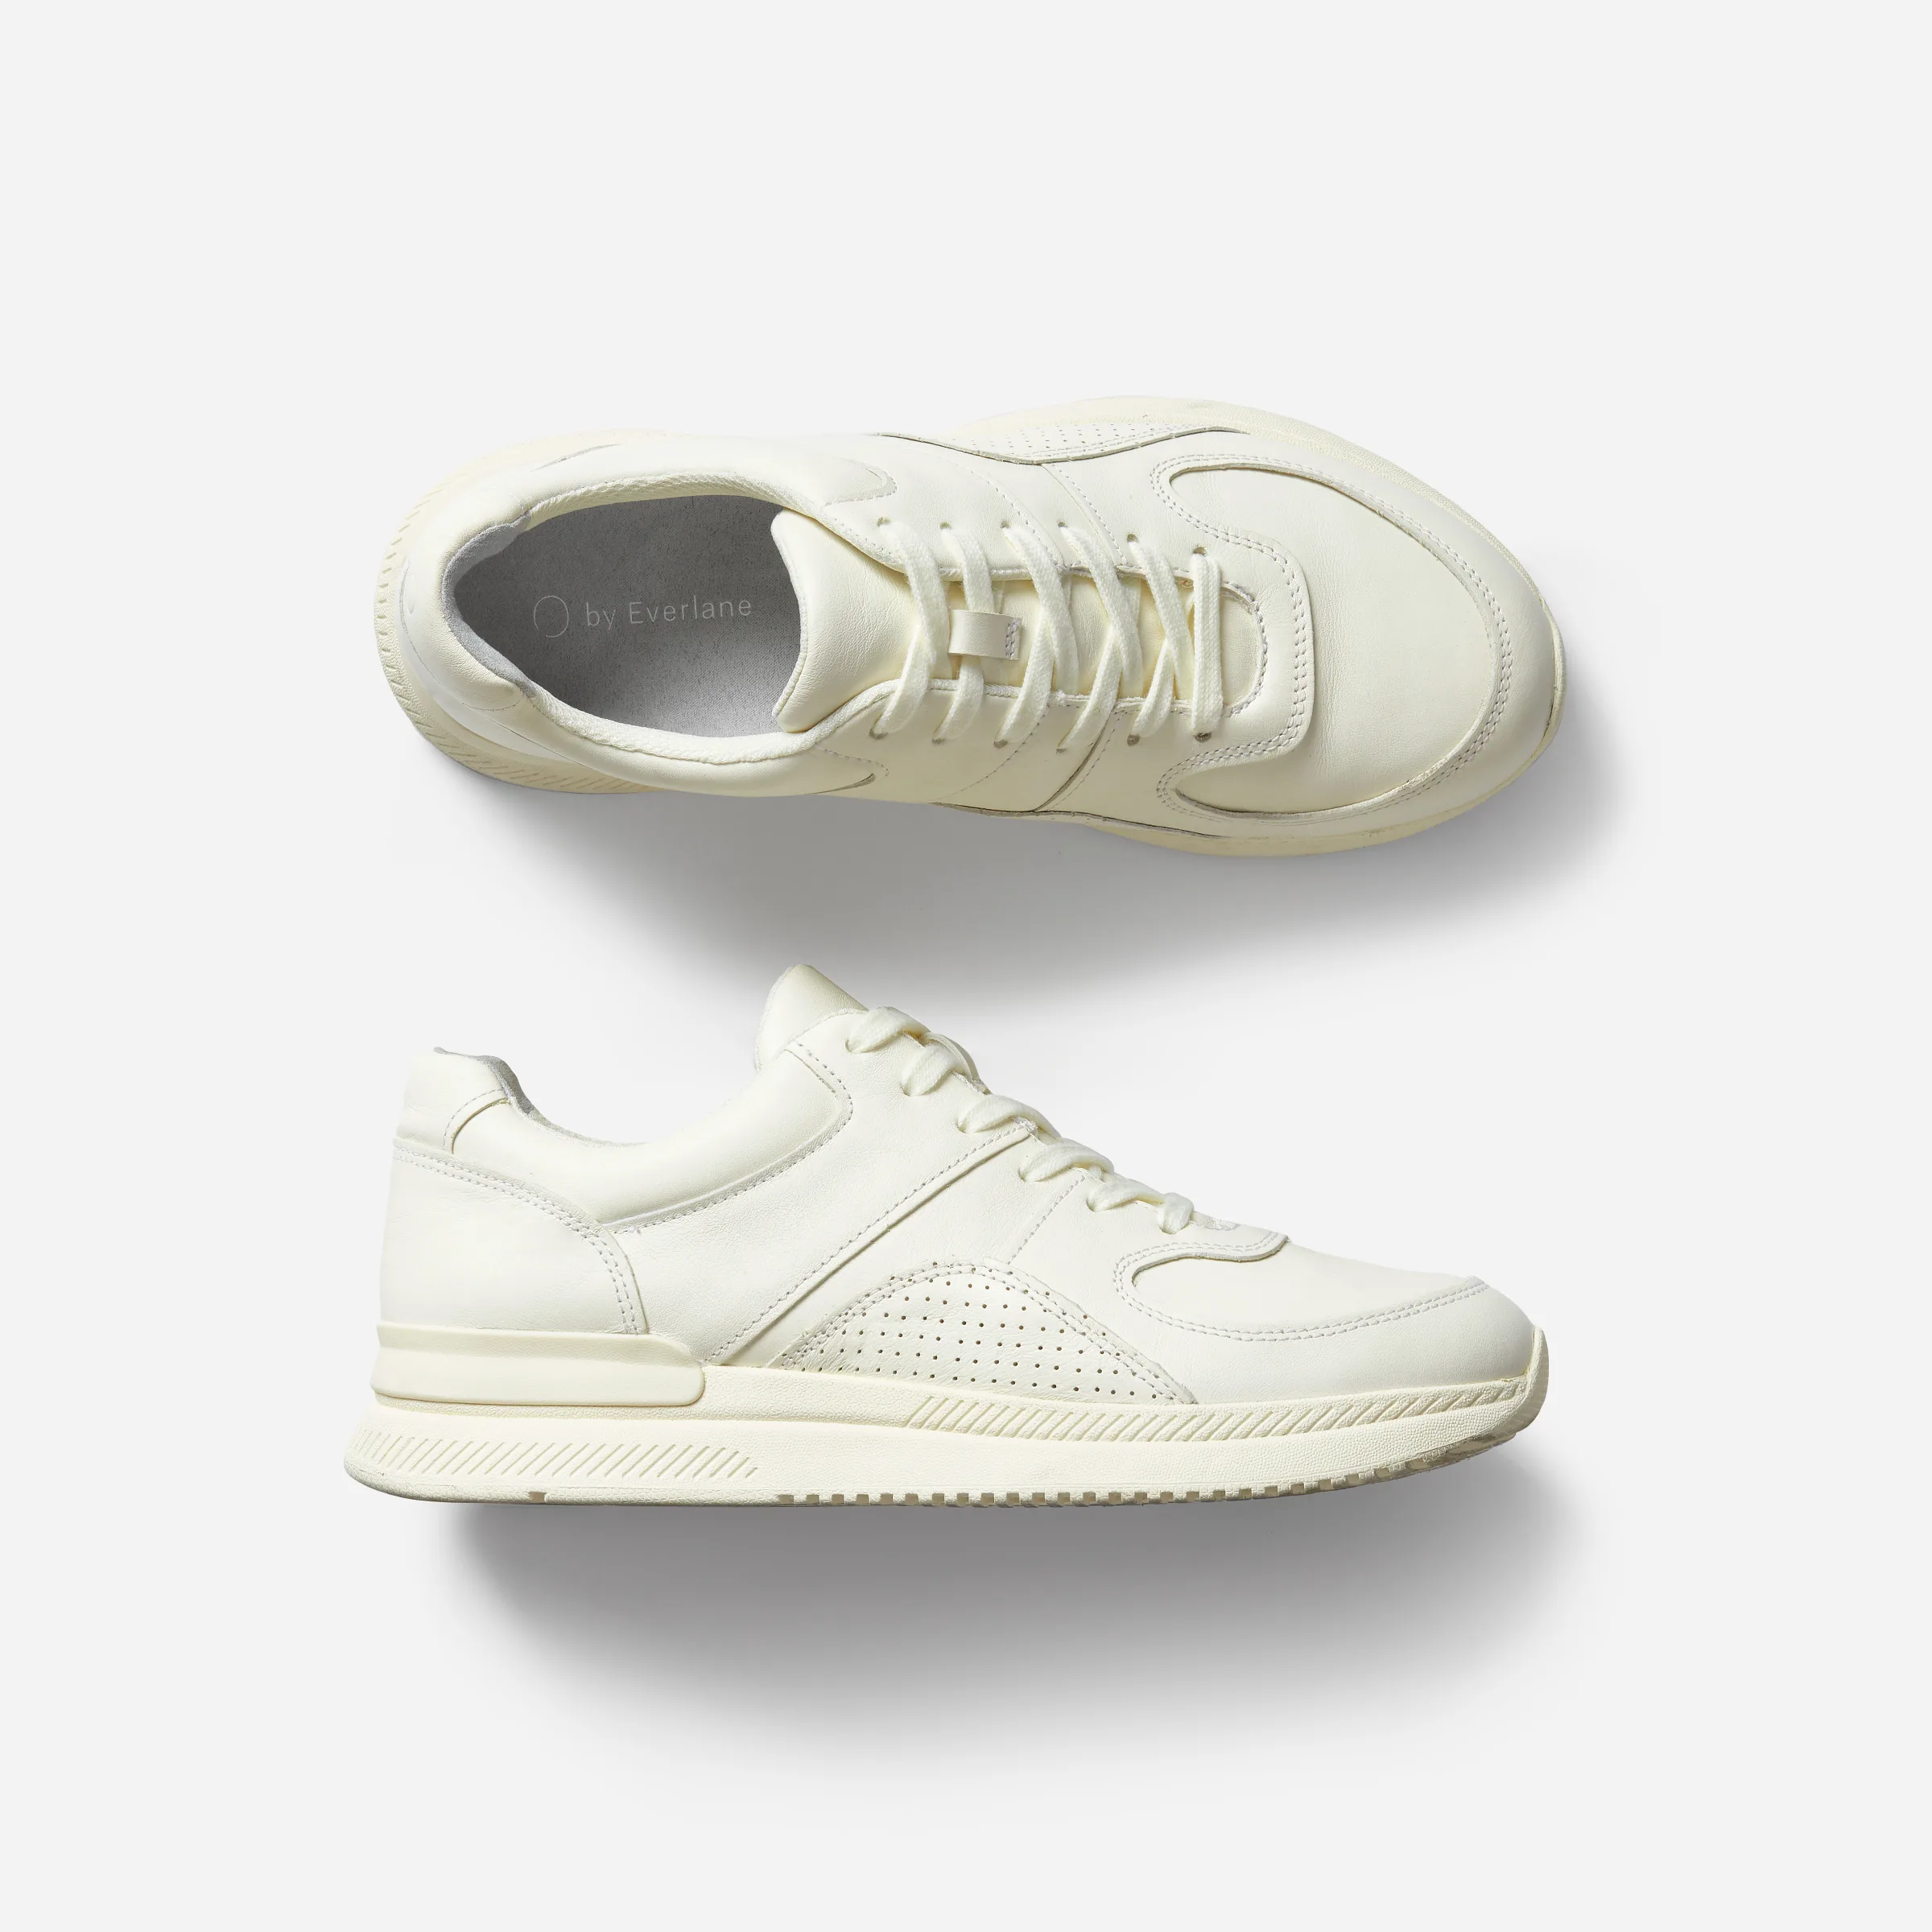 A side and top-down view of a white lowcut sneaker